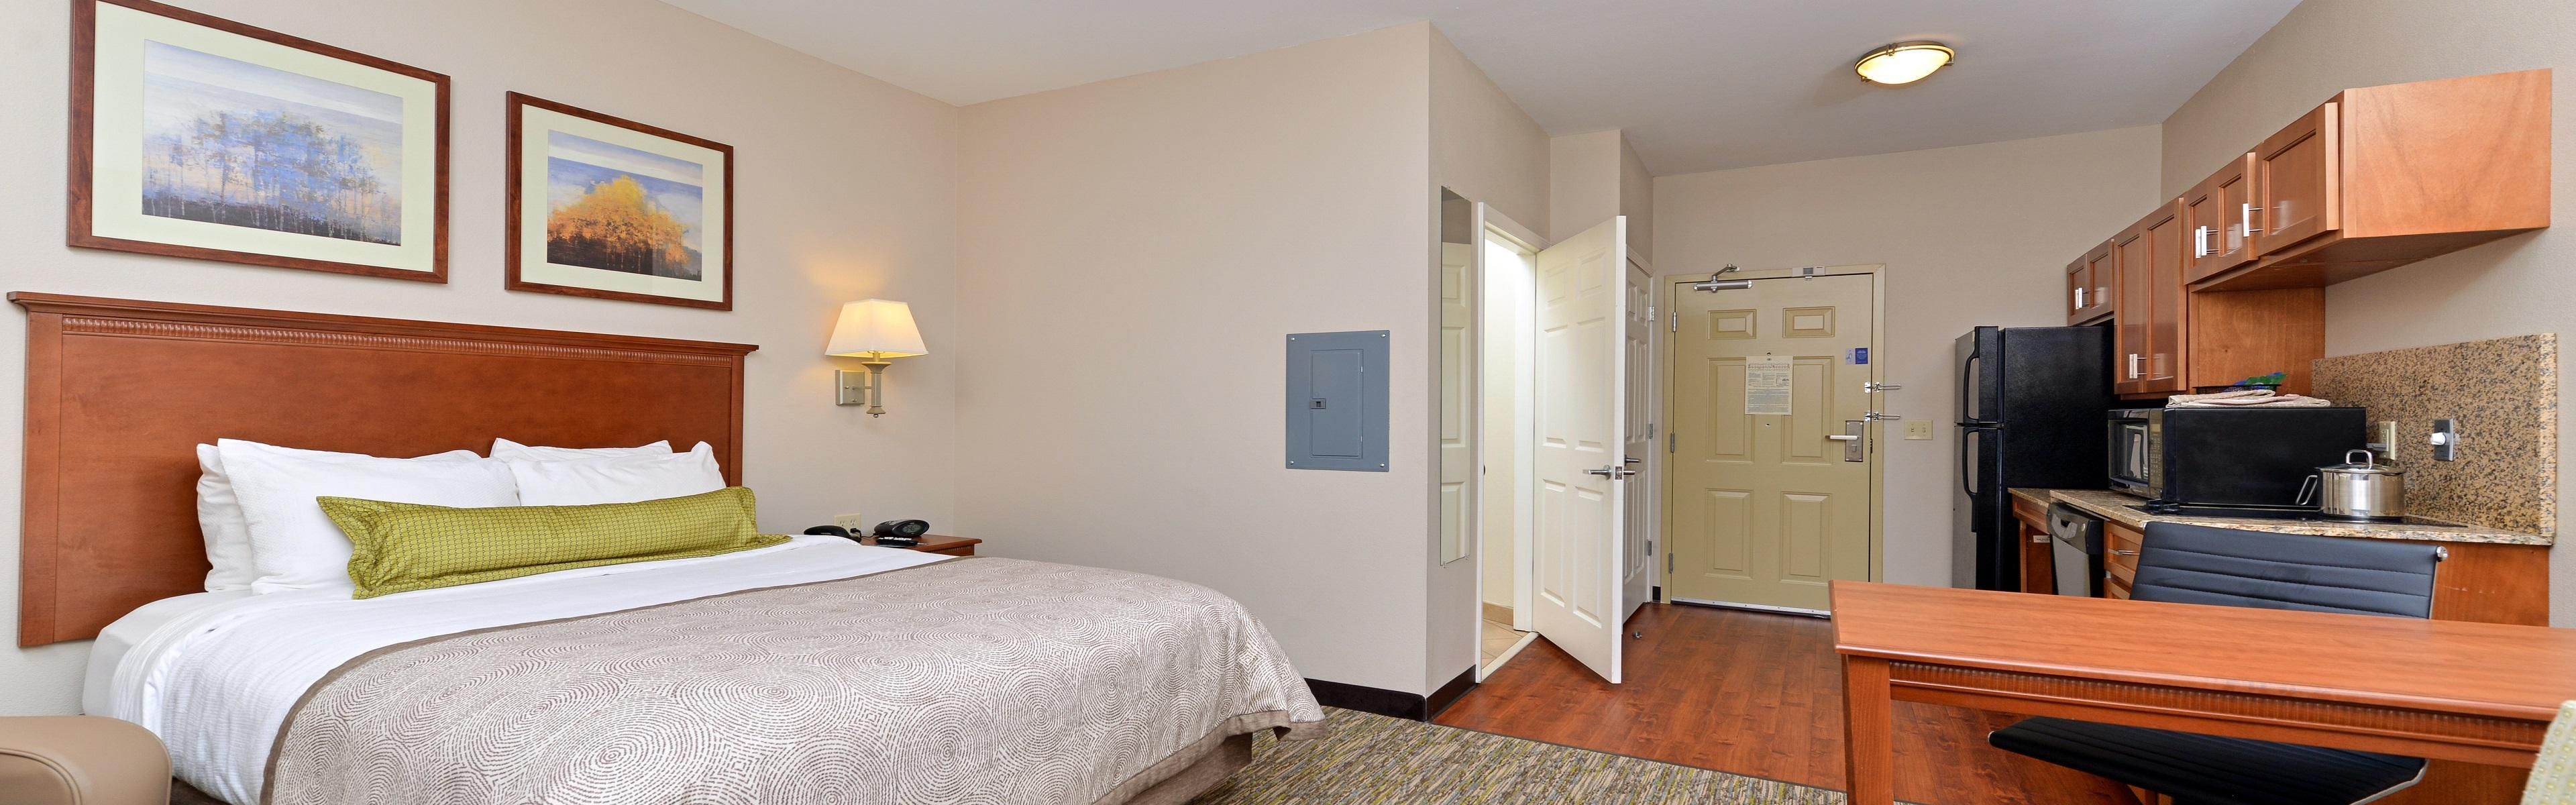 Candlewood Suites Athens image 1